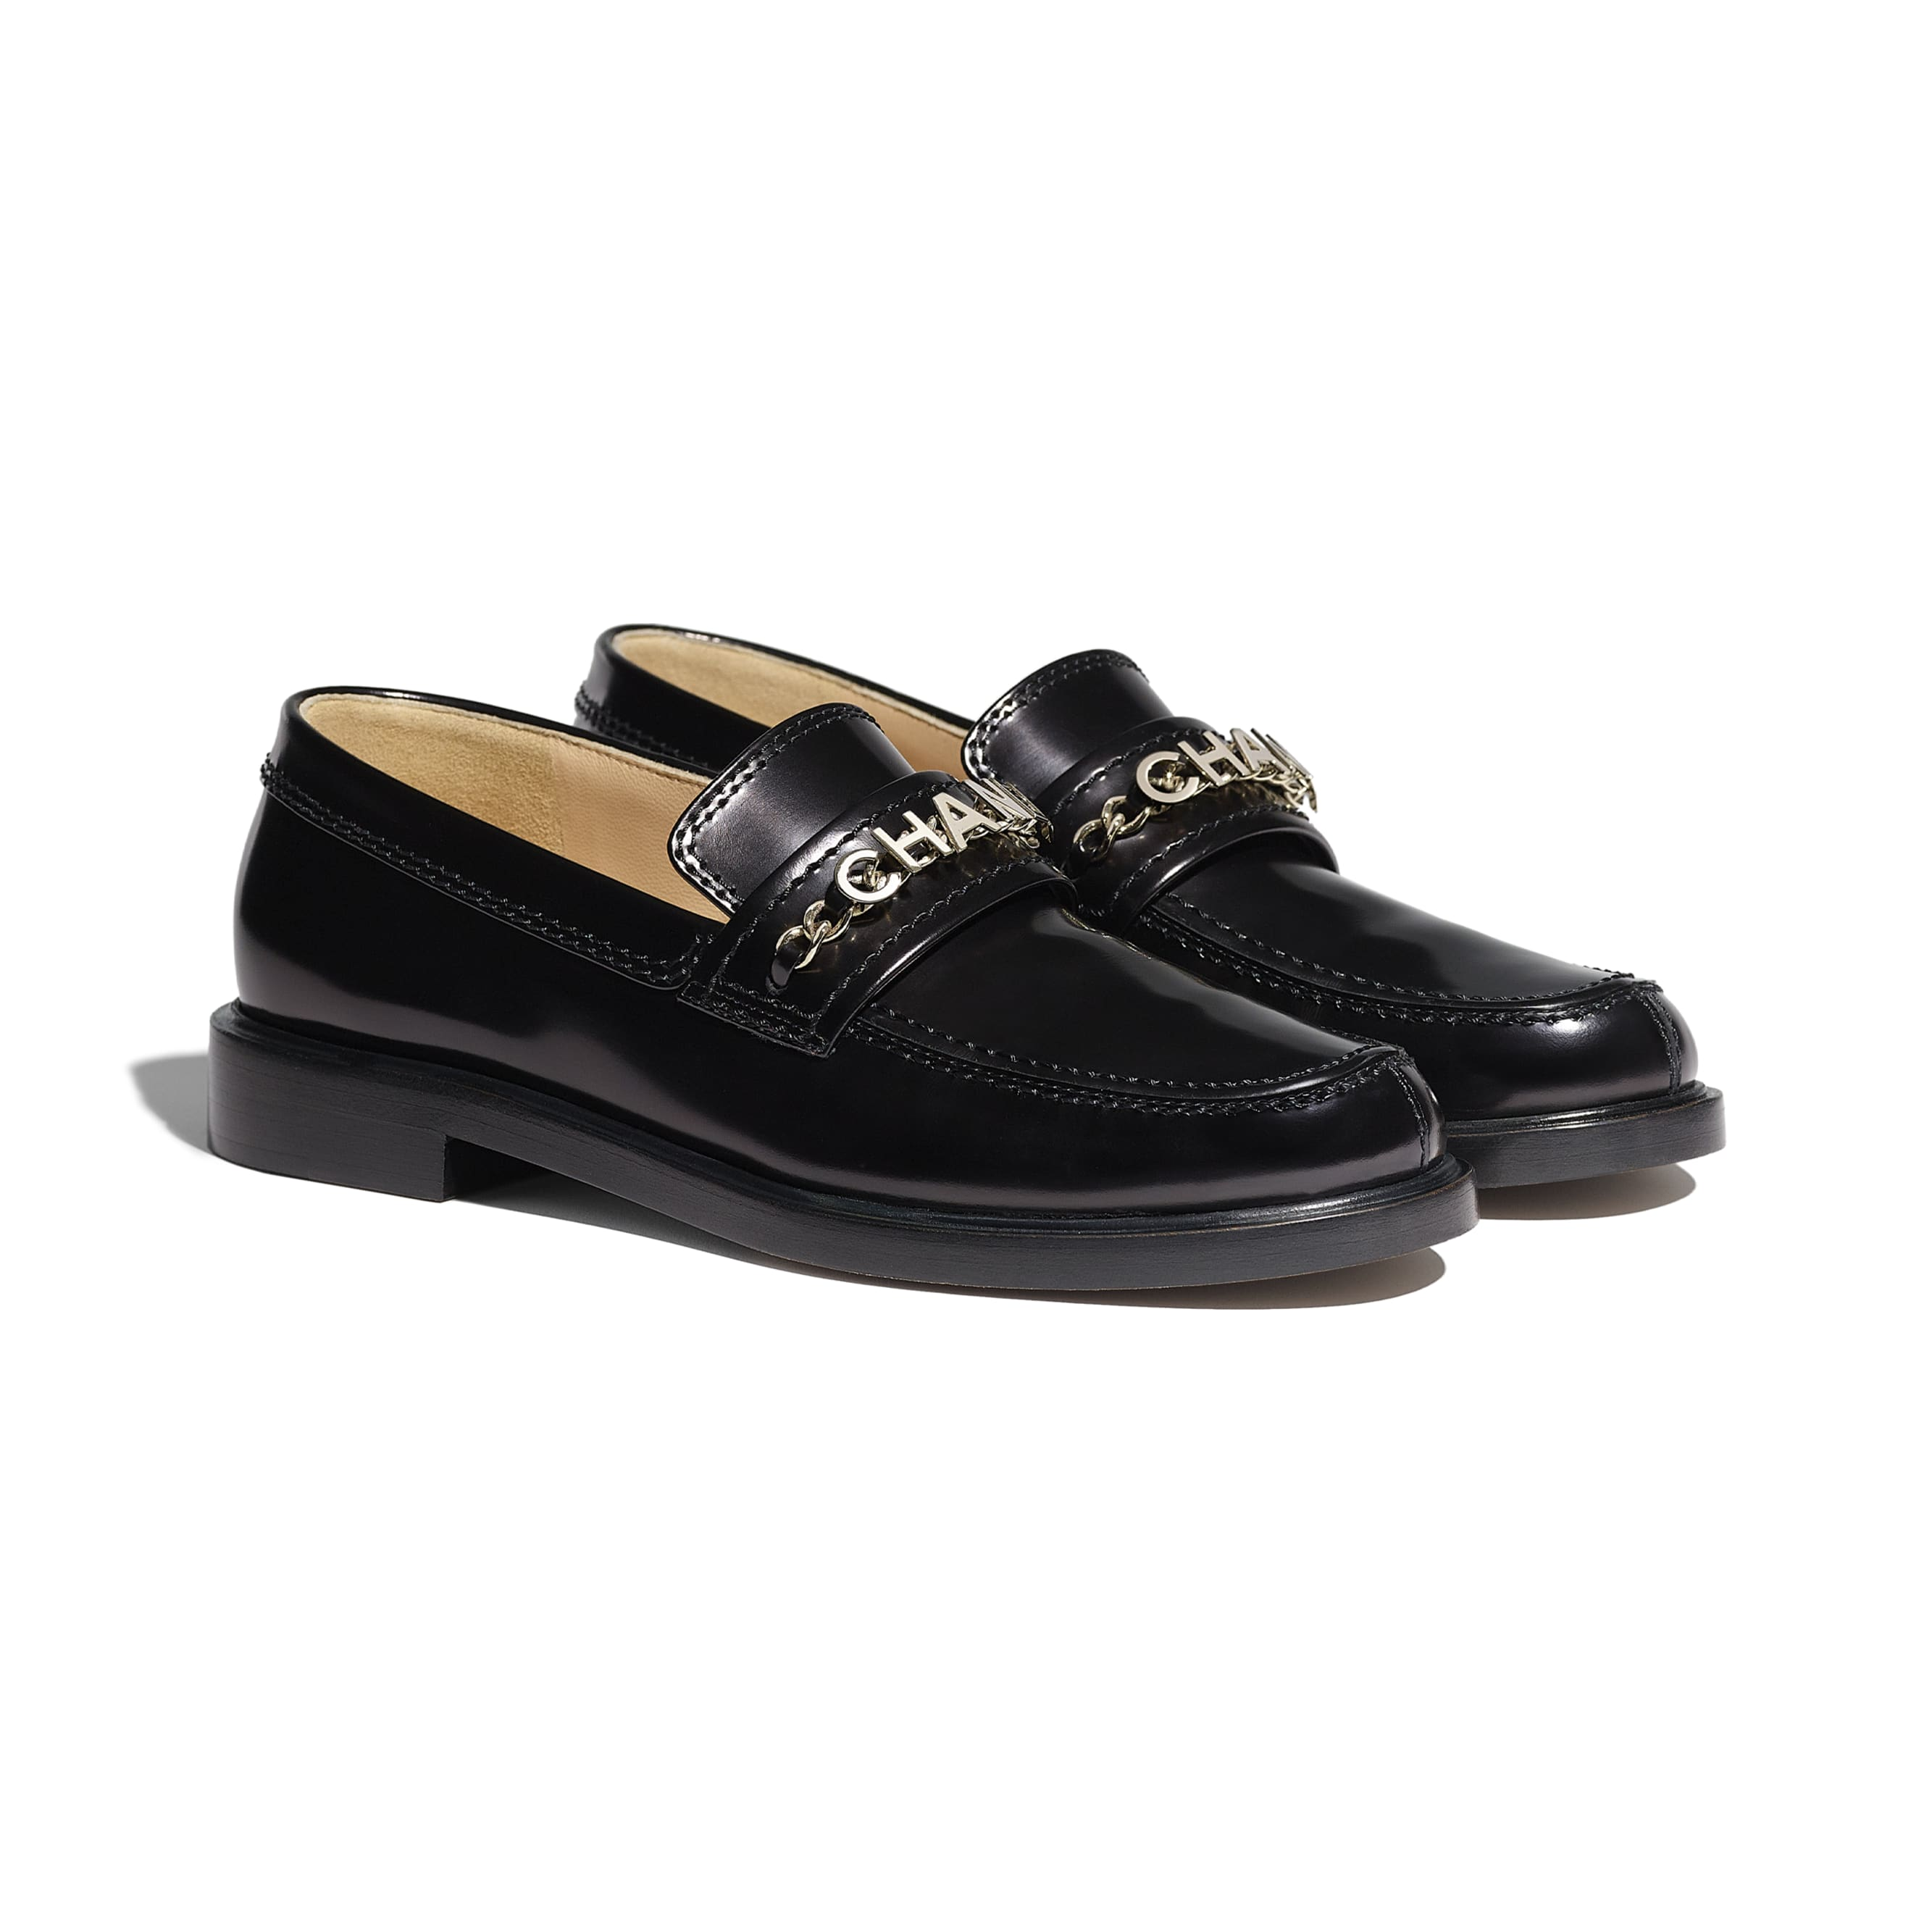 Loafers - Black - Shiny Calfskin - CHANEL - Alternative view - see standard sized version